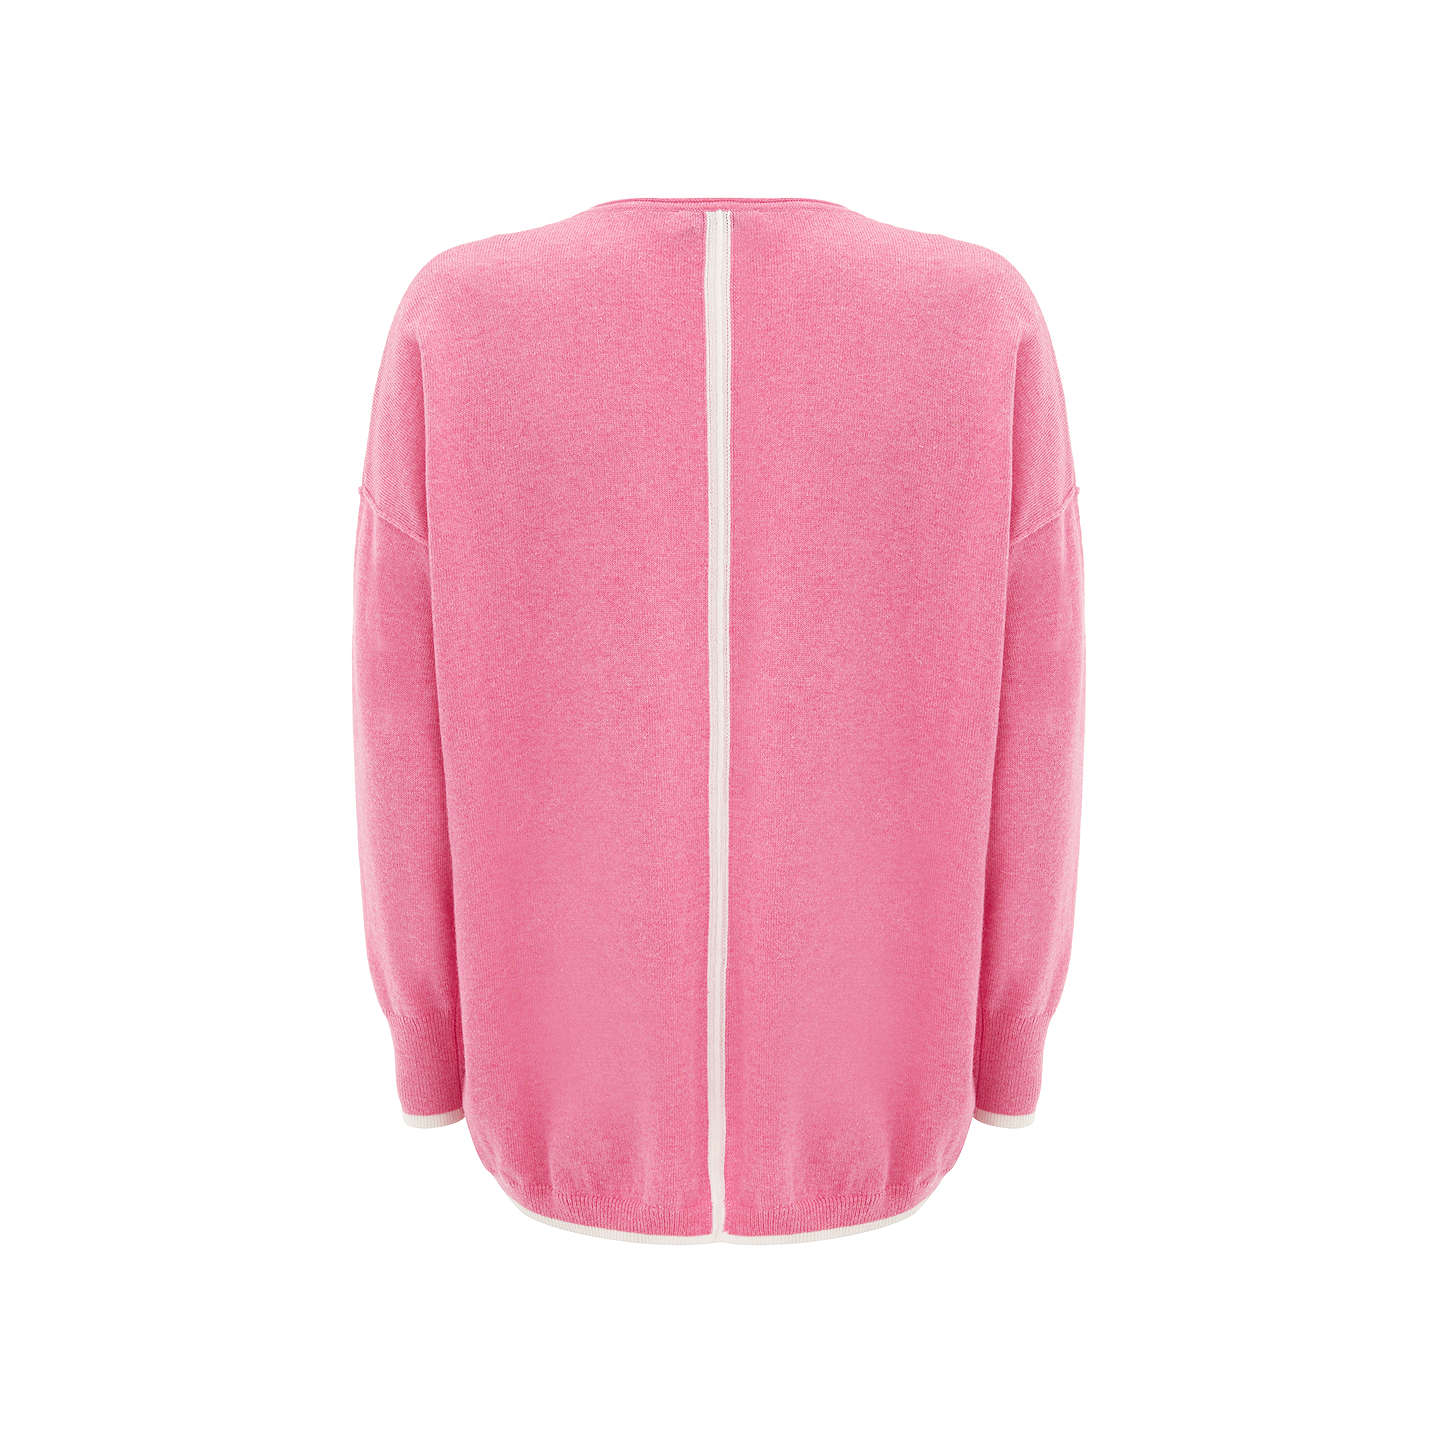 BuyMint Velvet Tipped Cocoon Knit Jumper, Pink, XS Online at johnlewis.com